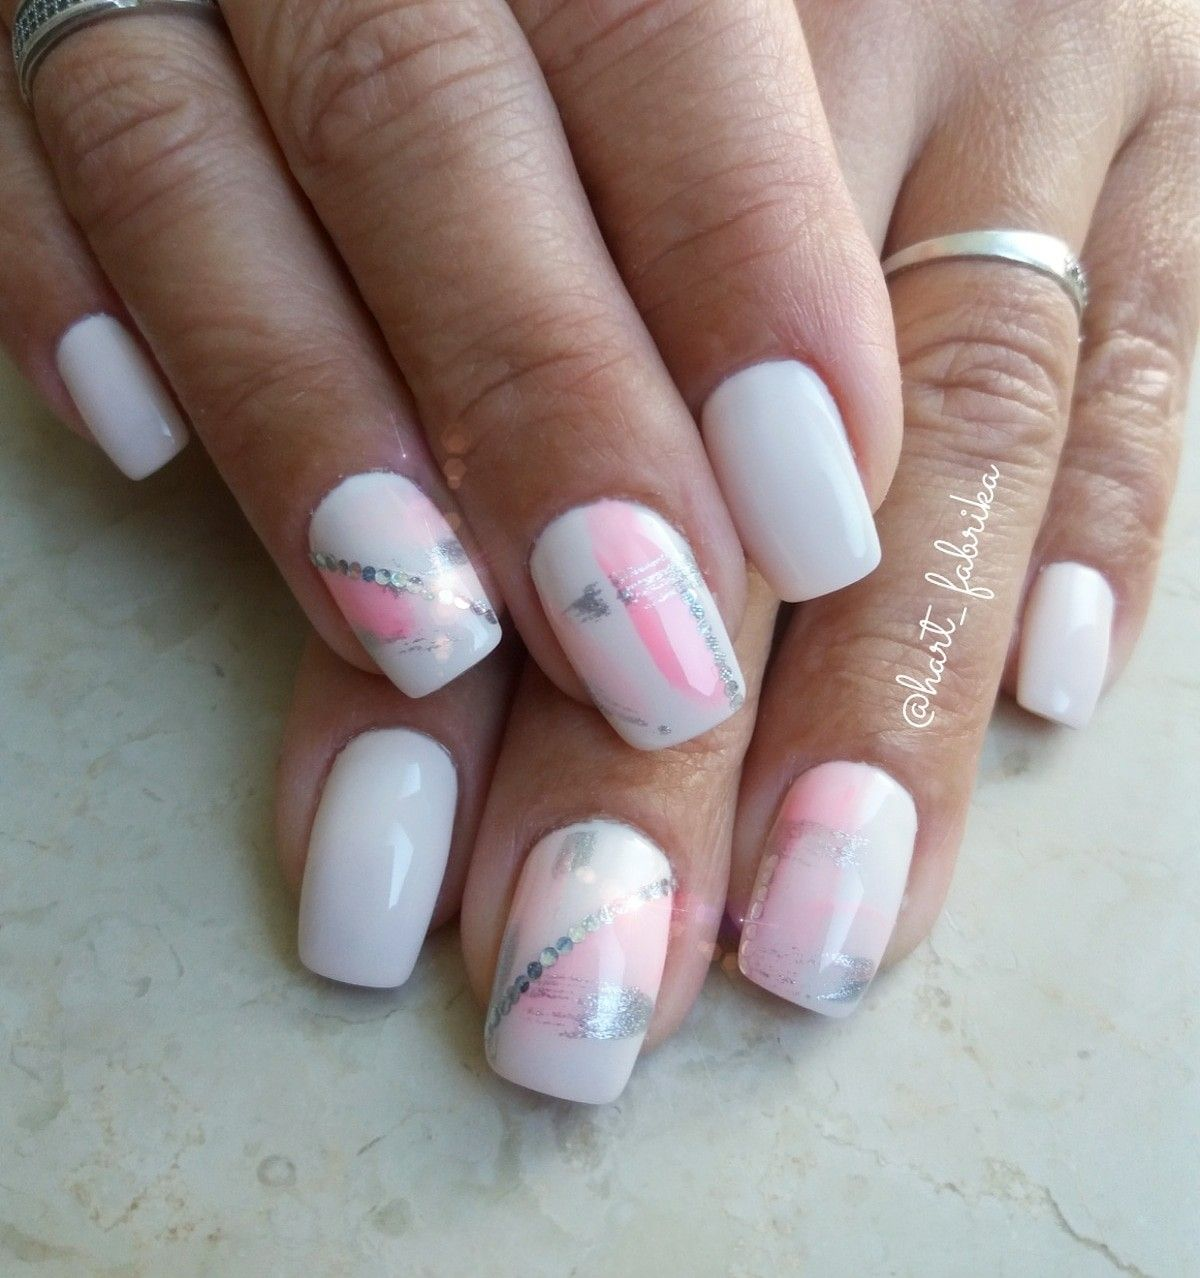 Summer Nail Design White Nails With Pink And Silved Details Nails Gel Nail Designs Gel Nails